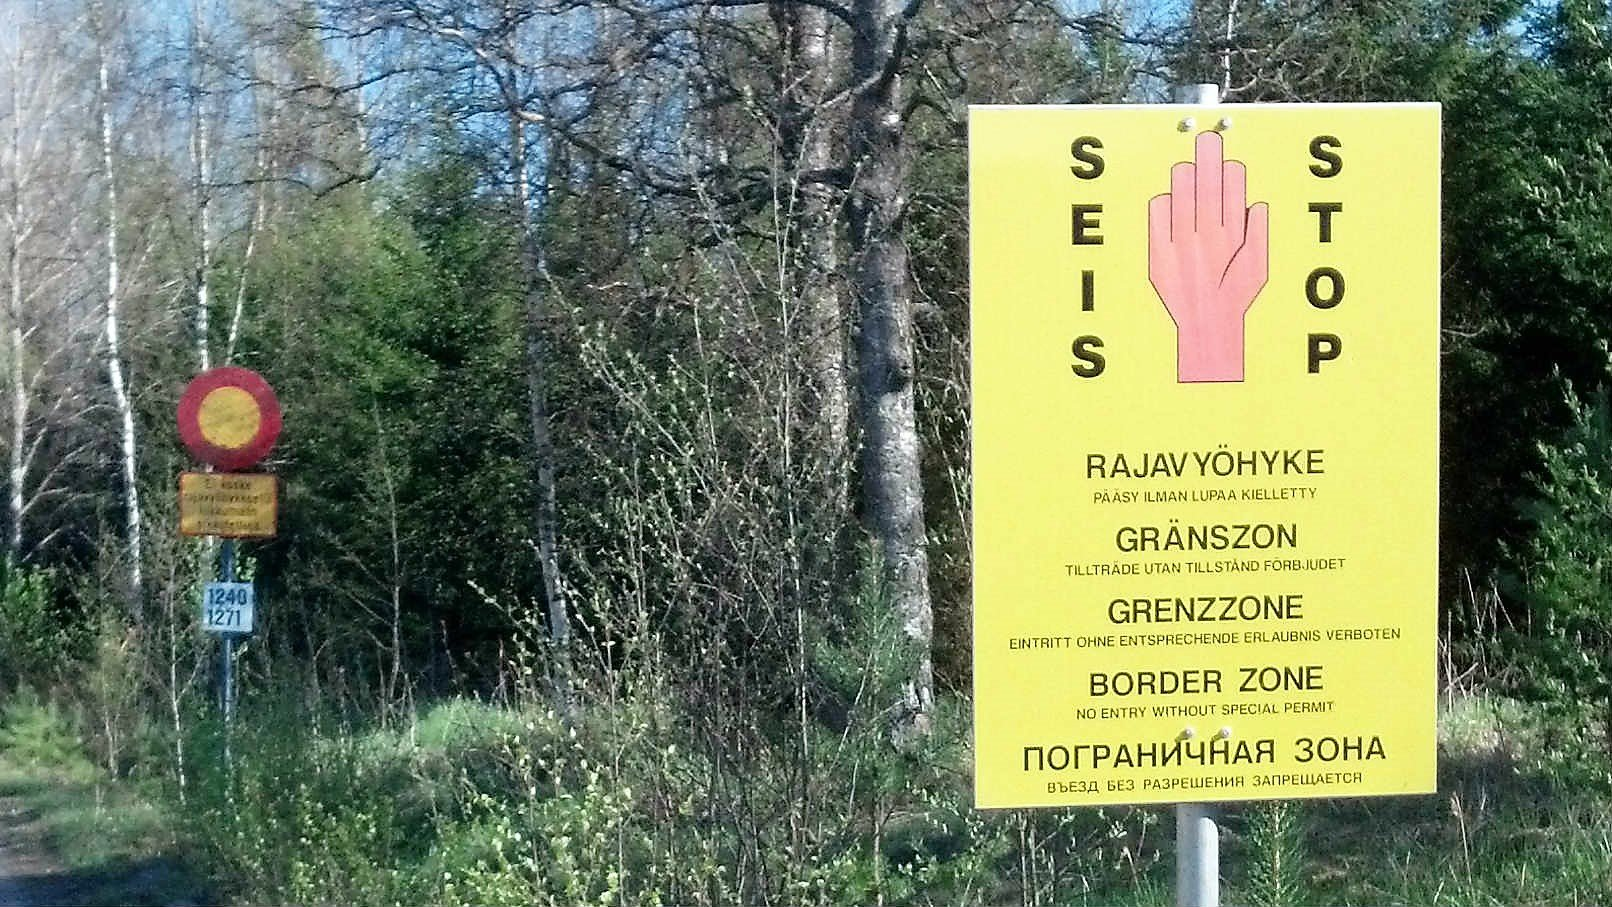 One of the real signs at Finland's border with Russia. Photo: © Foreigner.fi.